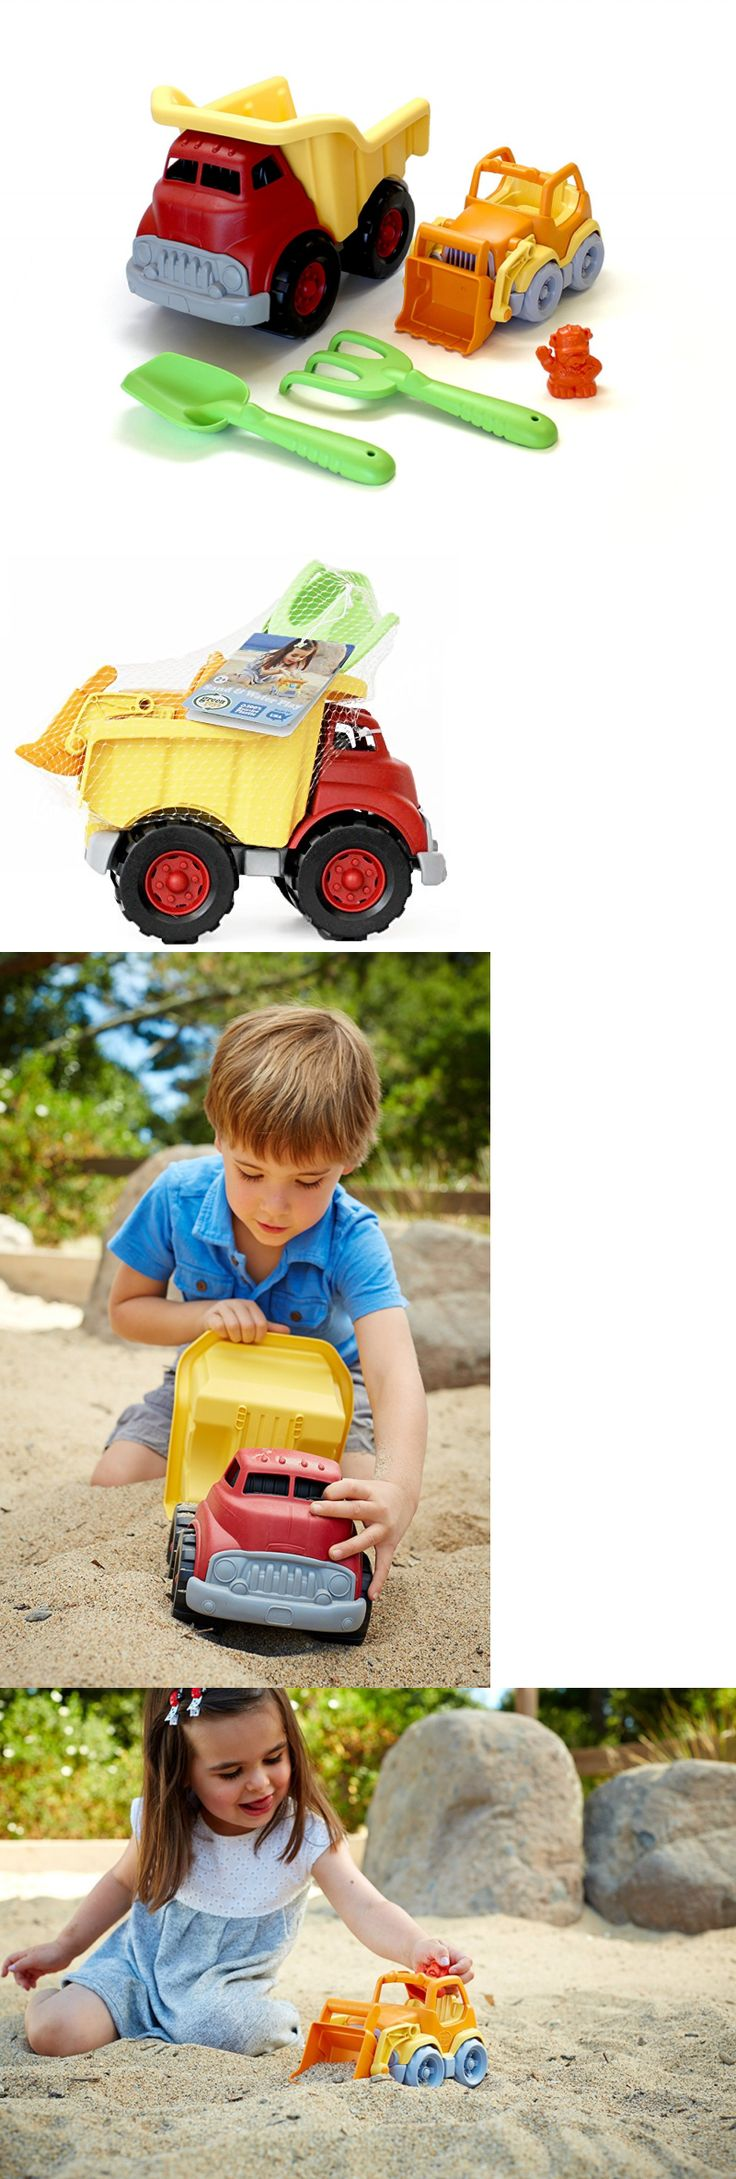 Sandbox Toys and Sandboxes 145990: Green Toys Sand And Water Play Dump Truck With Scooper -> BUY IT NOW ONLY: $33.99 on eBay!